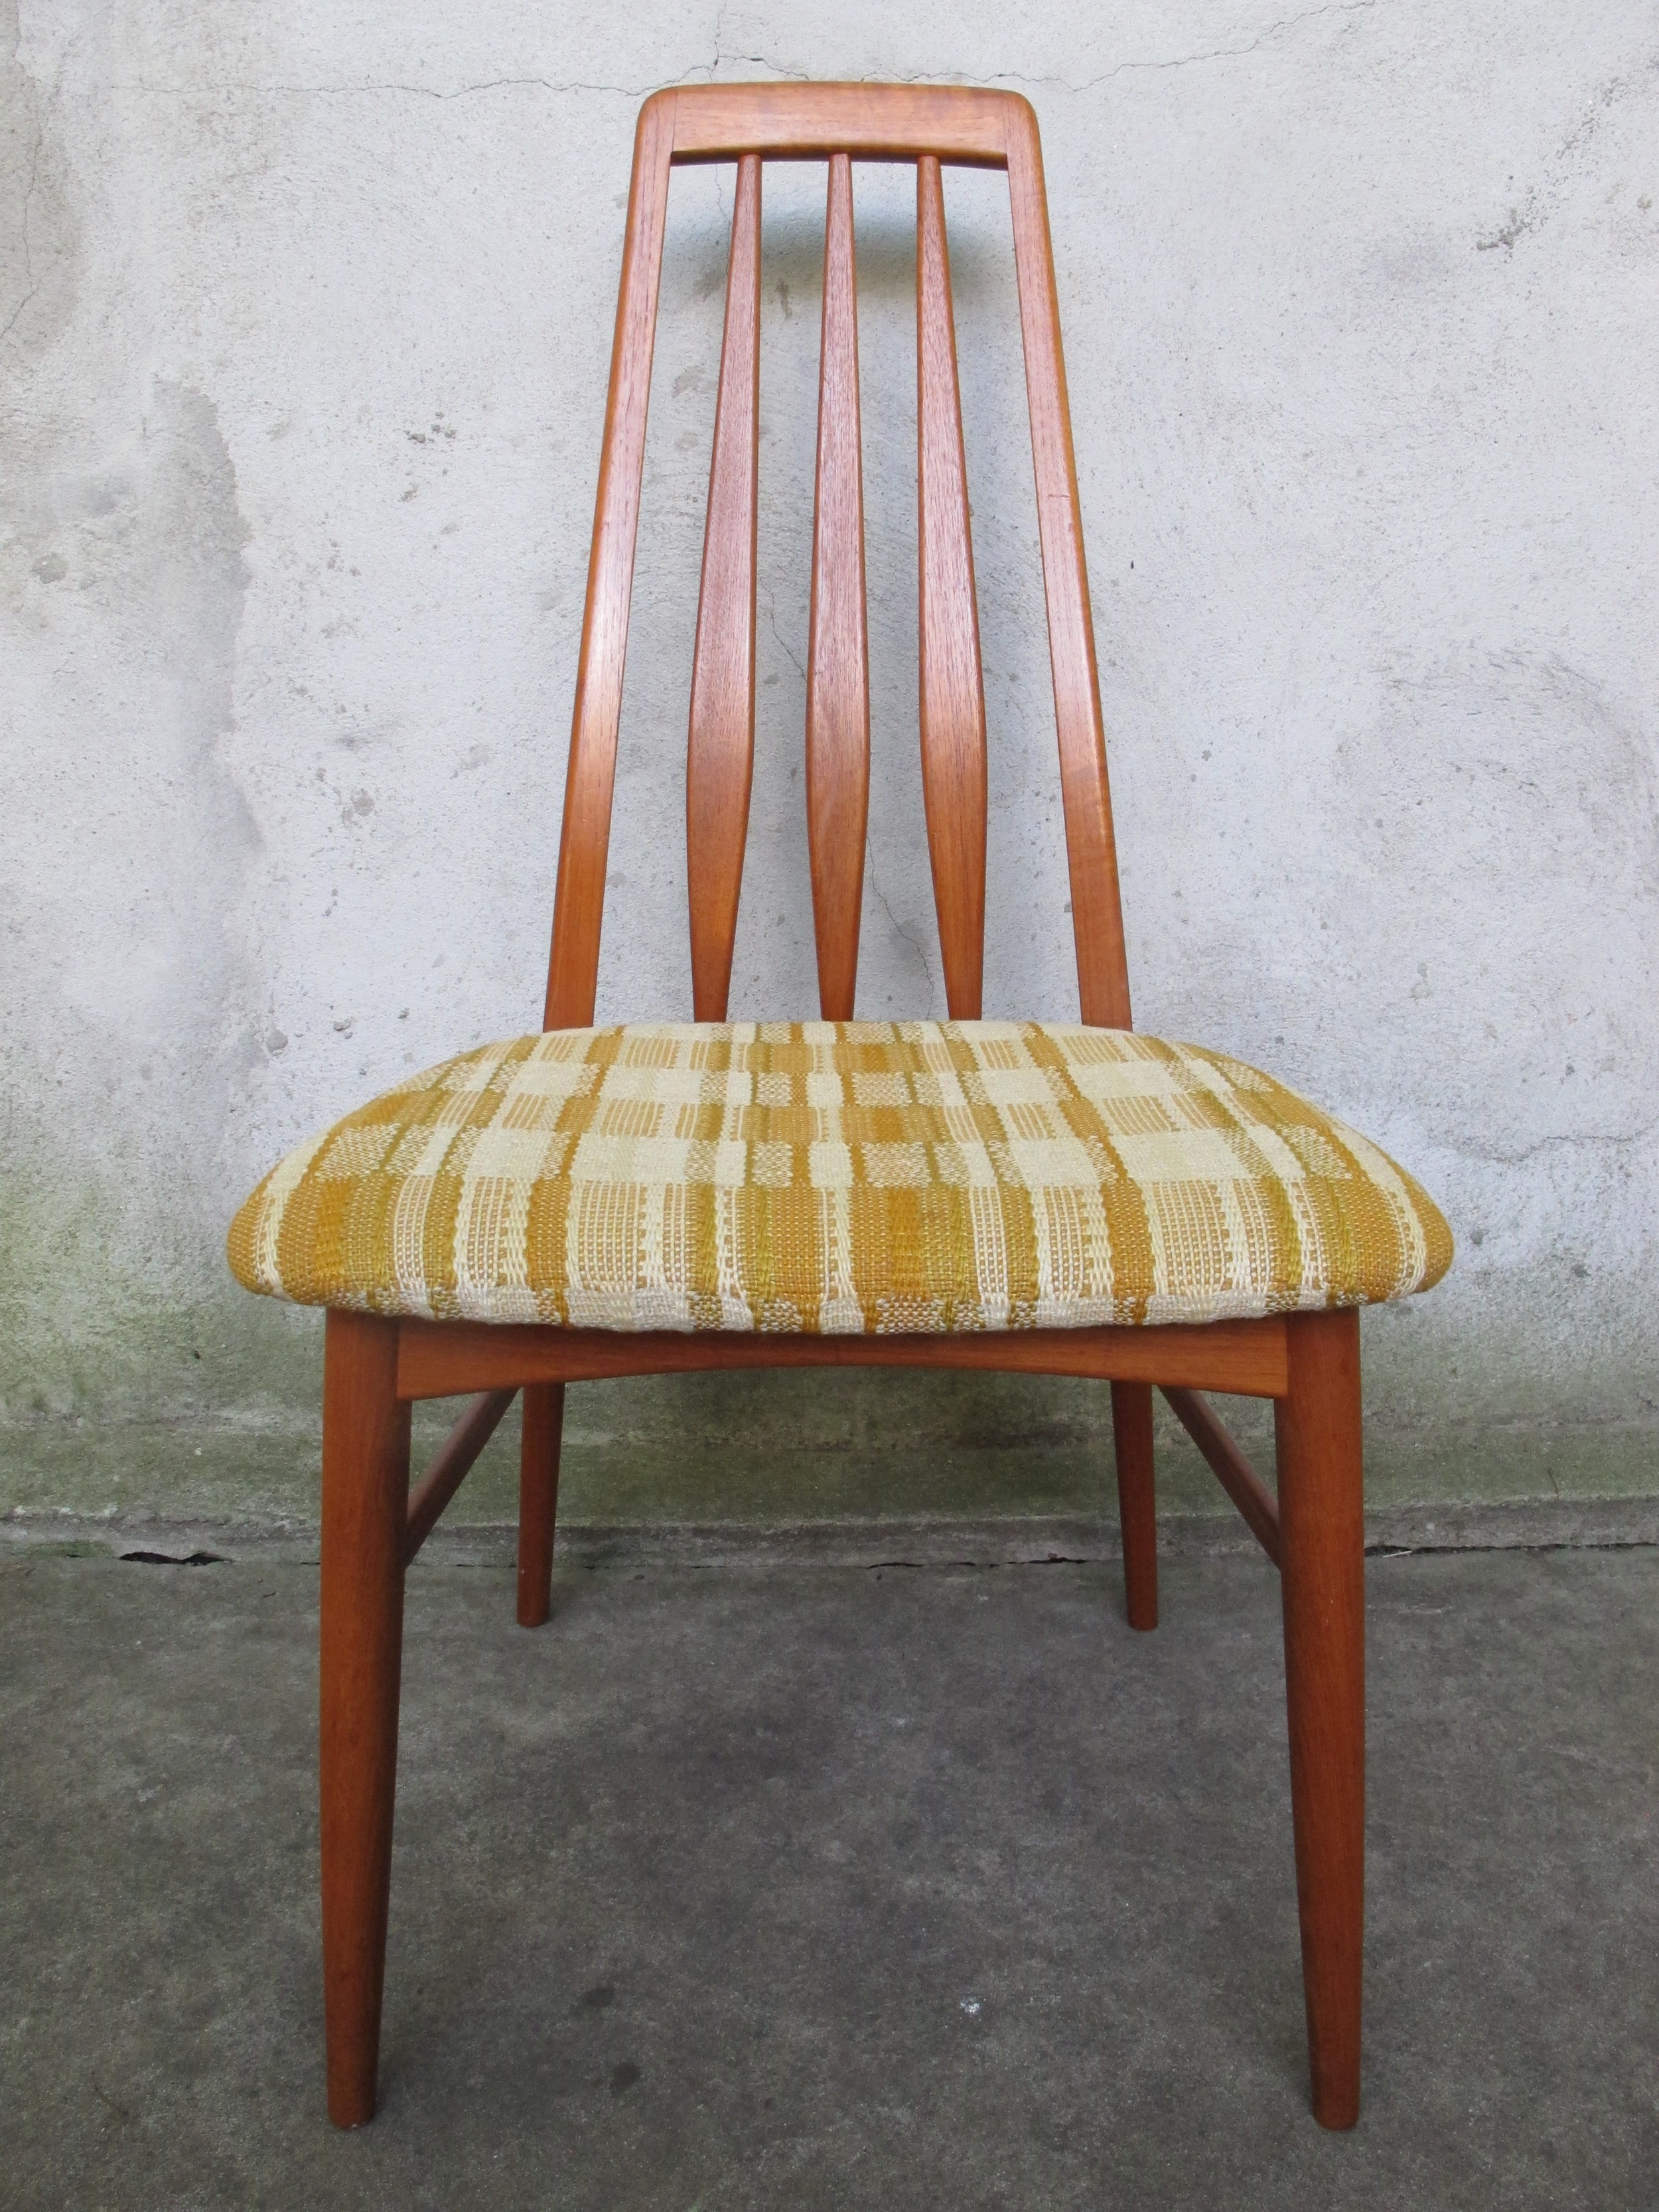 DANISH NIELS KOEFOED EVA TEAK SLAT BACK DINING CHAIR BY HORNSLET